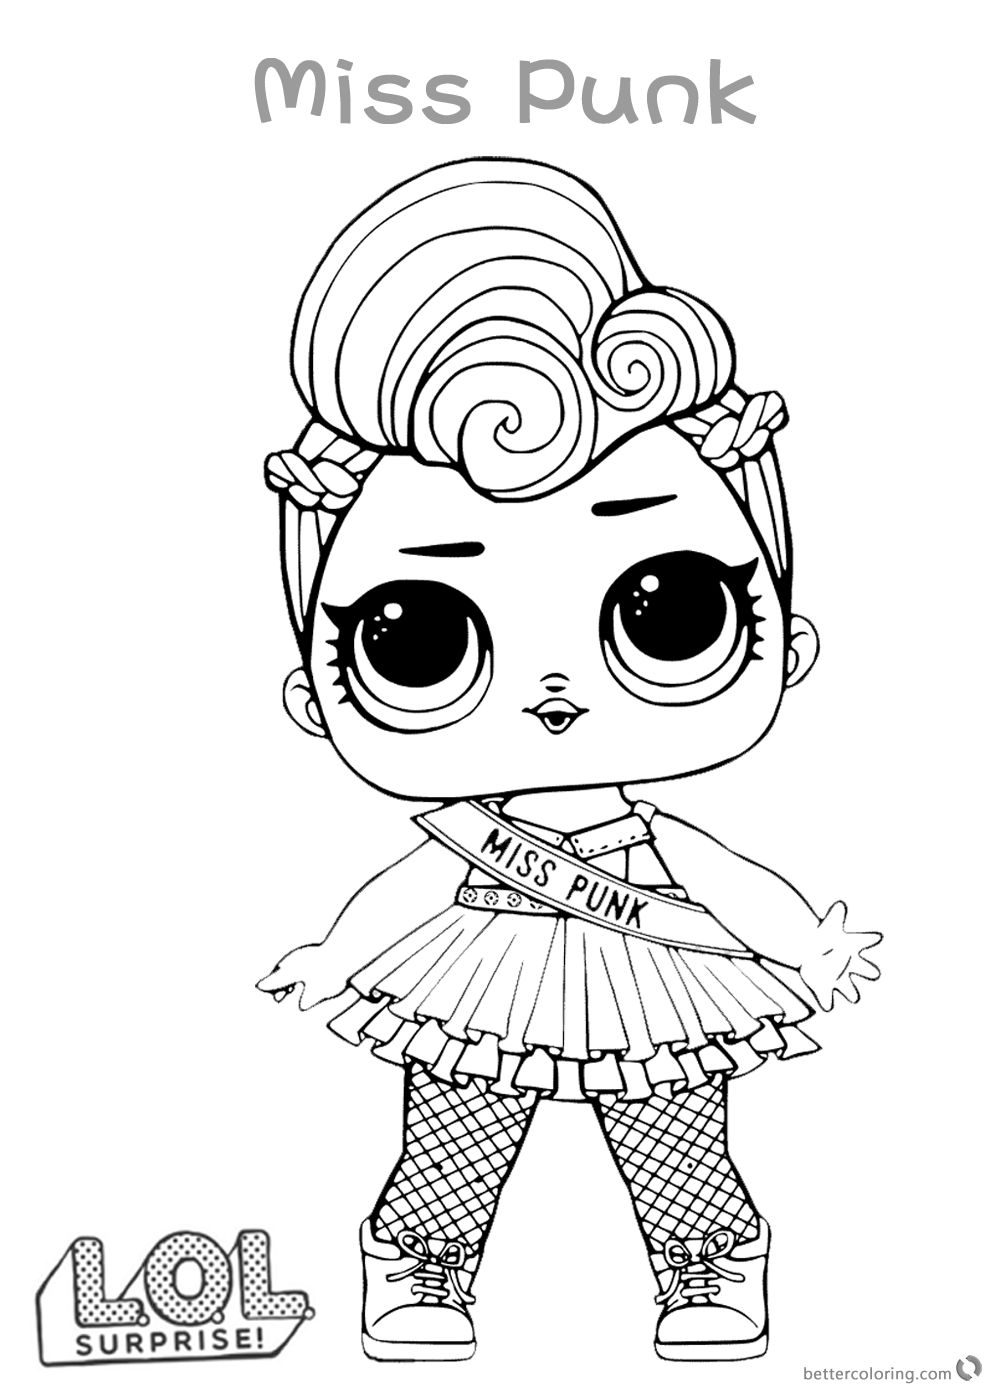 Cute LOL Surprise Doll Coloring Pages Miss Punk printable